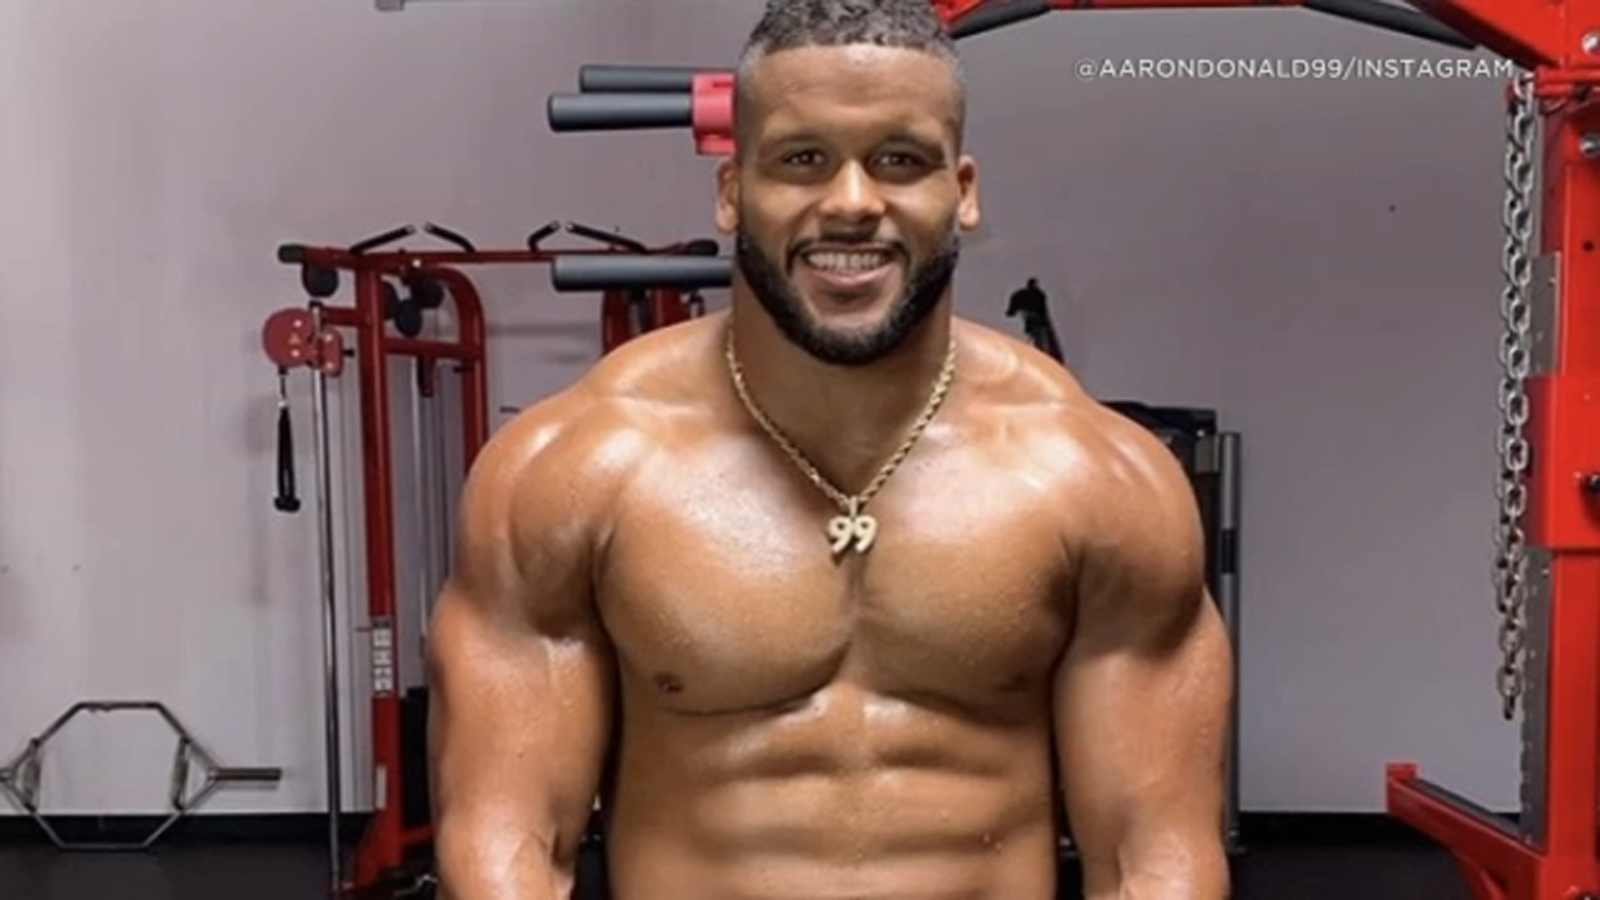 Aaron Donald Rams All Pro Tackle Grinding Every Single Day Ready For Season Abc7 Los Angeles